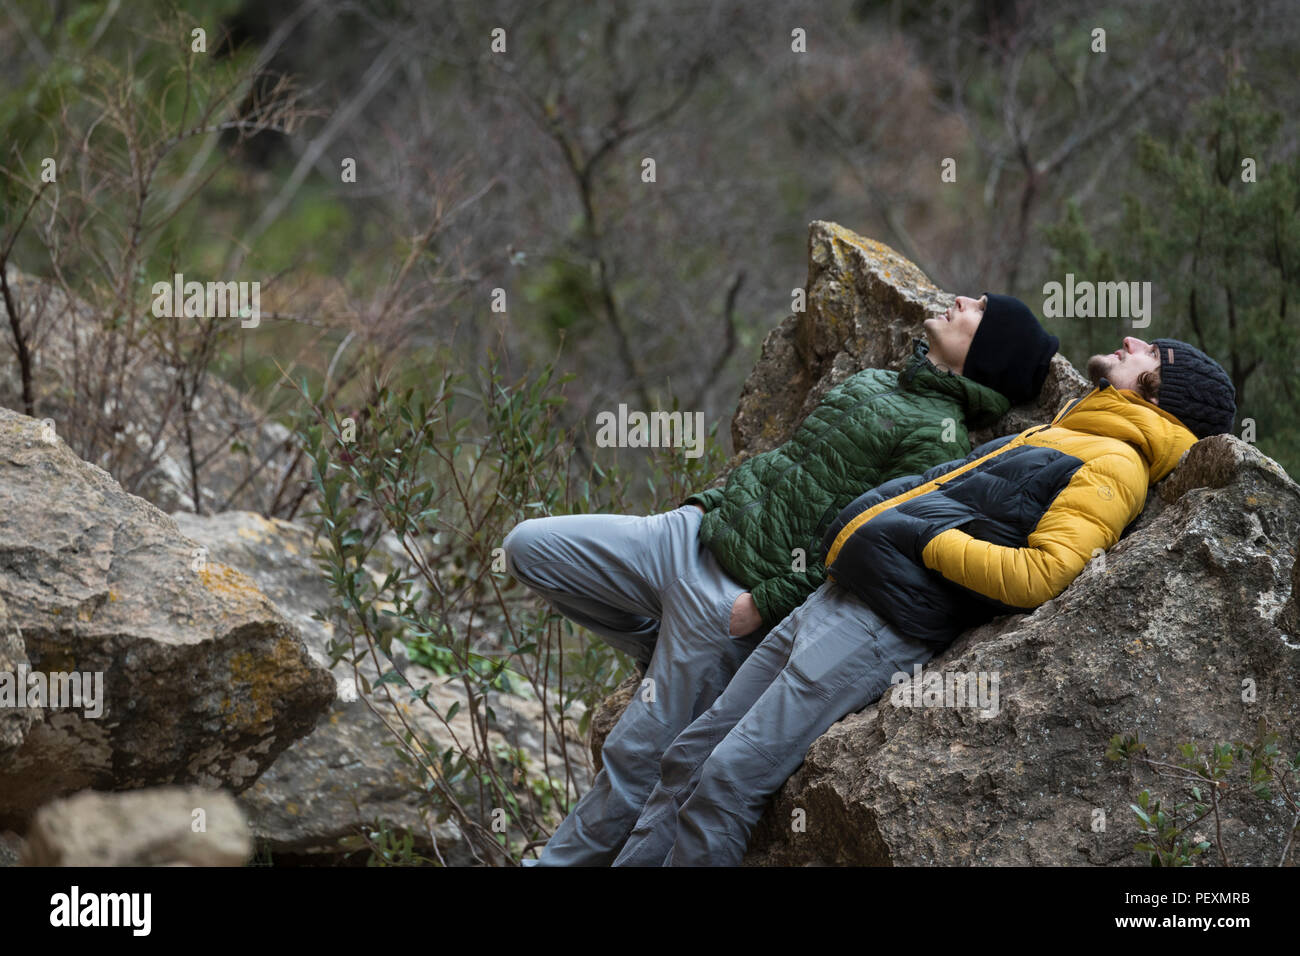 Two men lying against rock and looking up - Stock Image